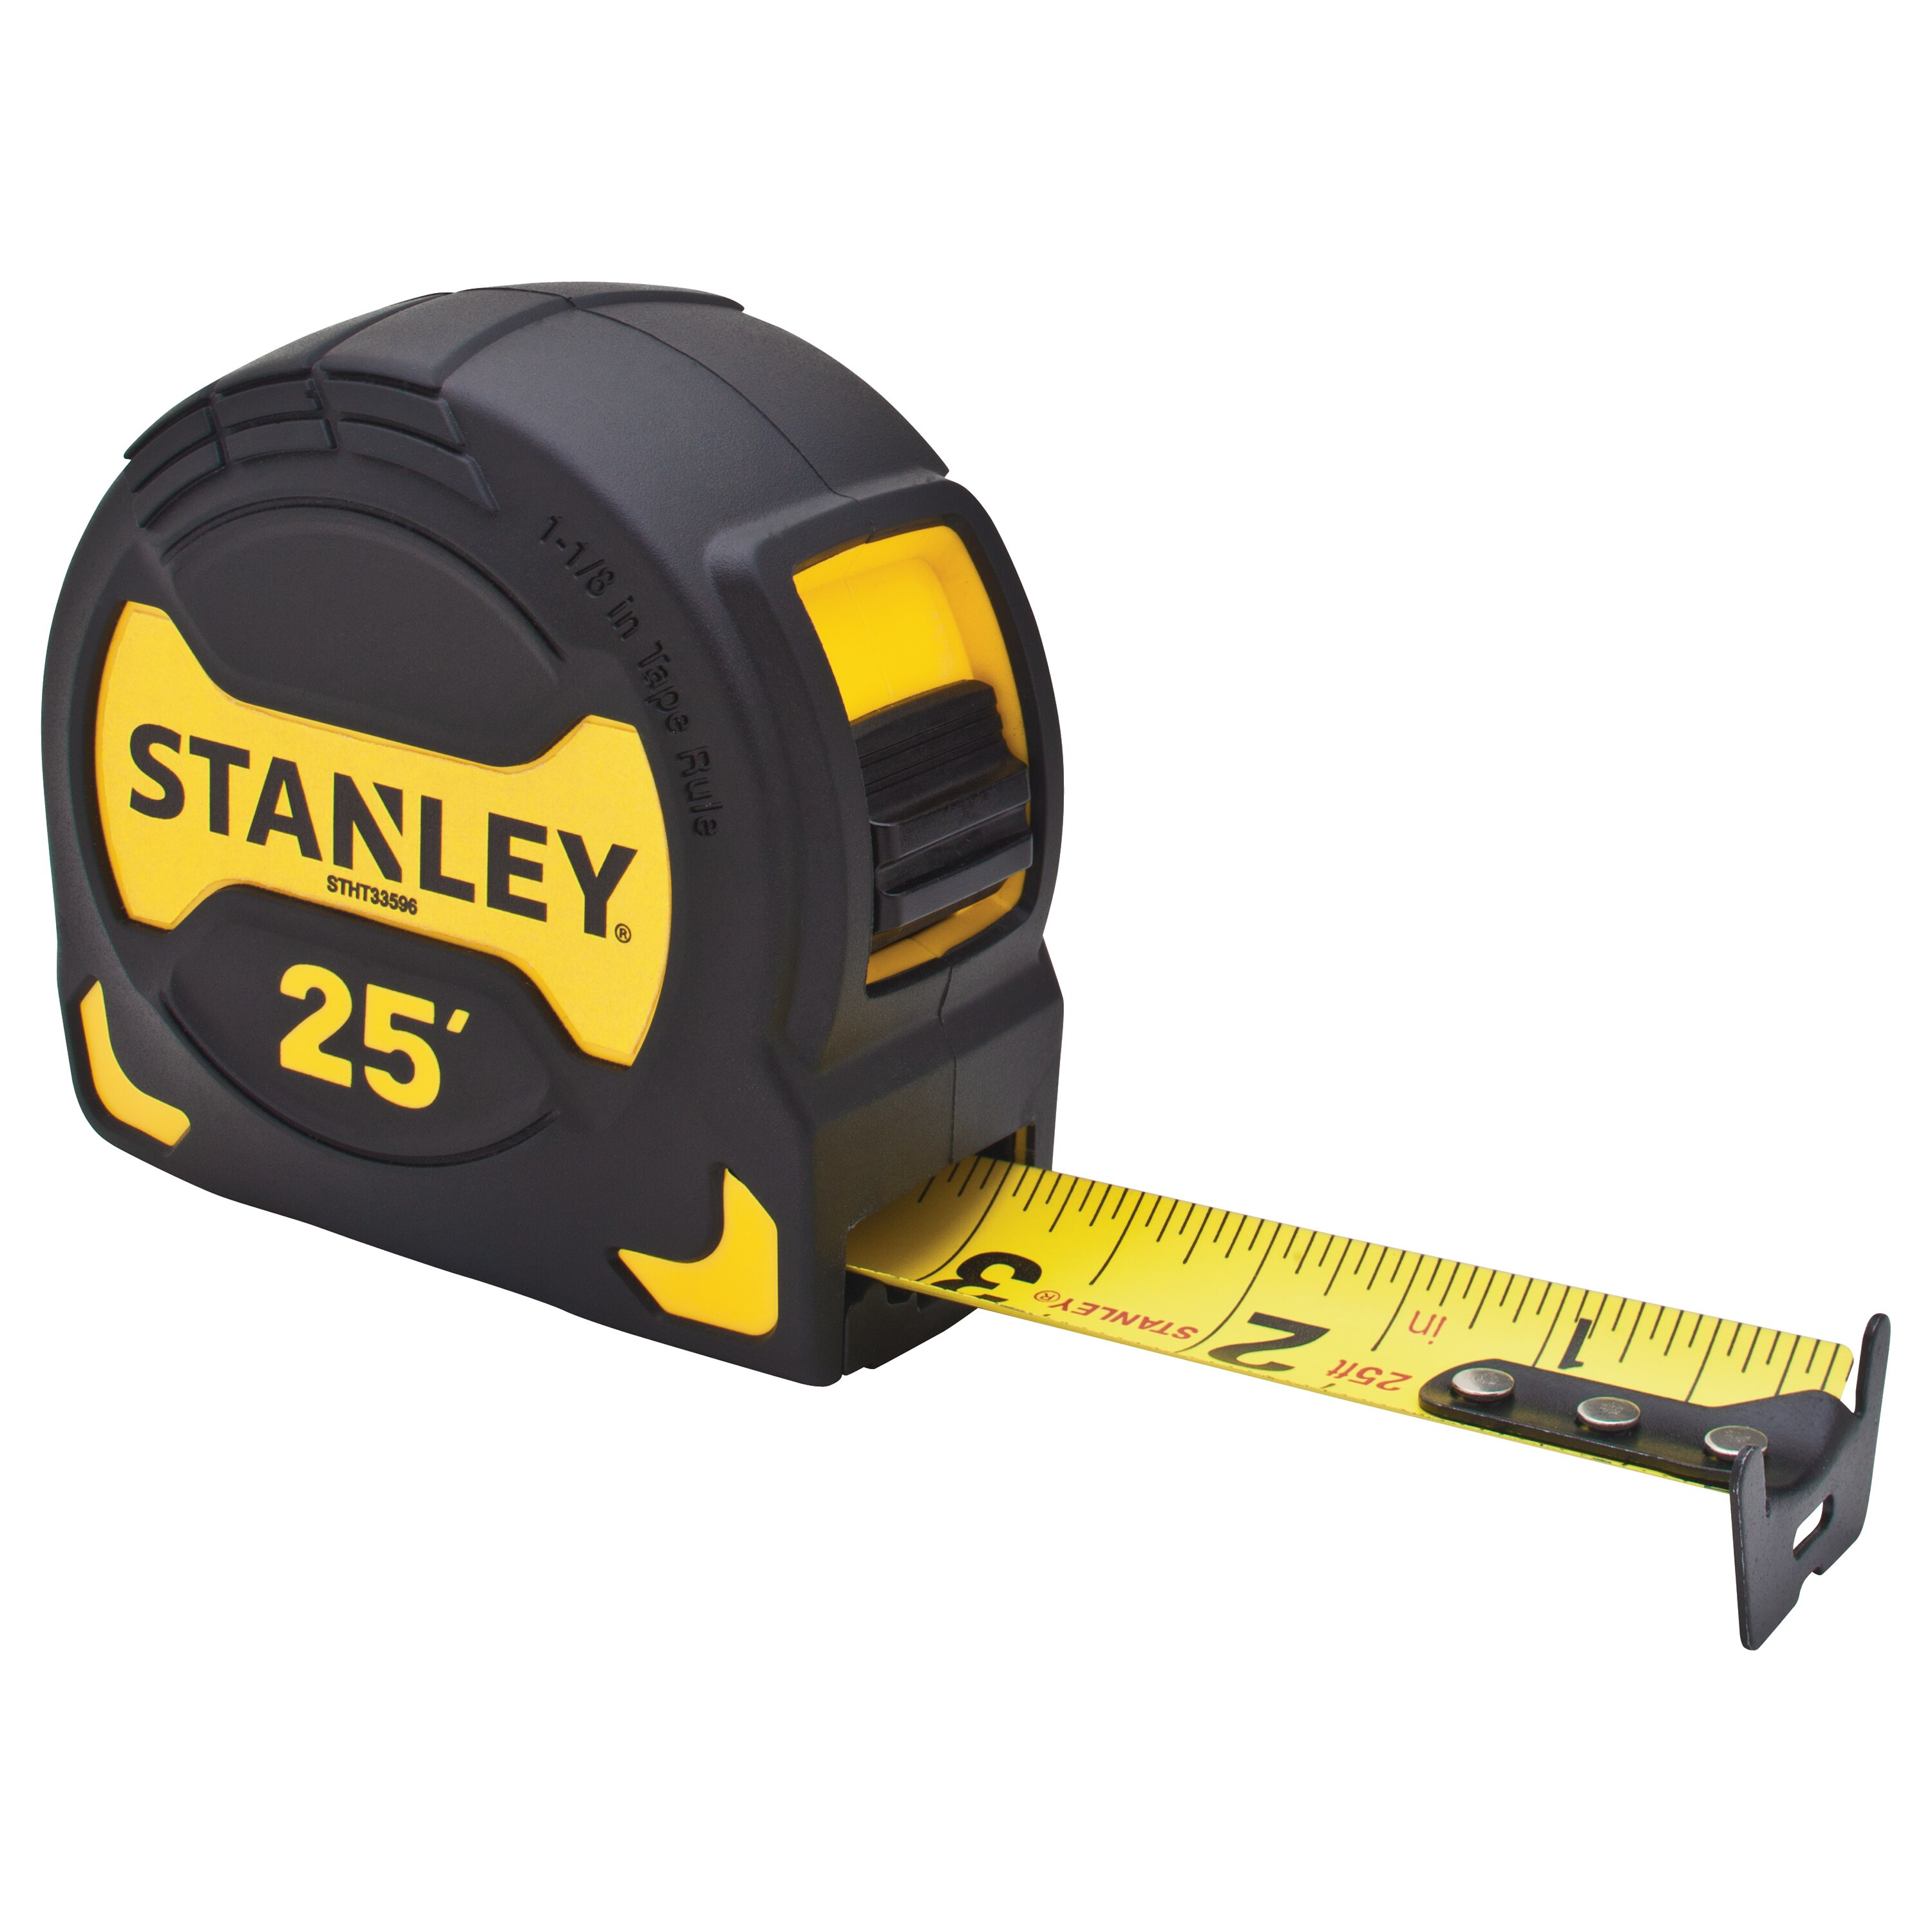 Stanley Tools - 25 ft Tape Measure - STHT33596